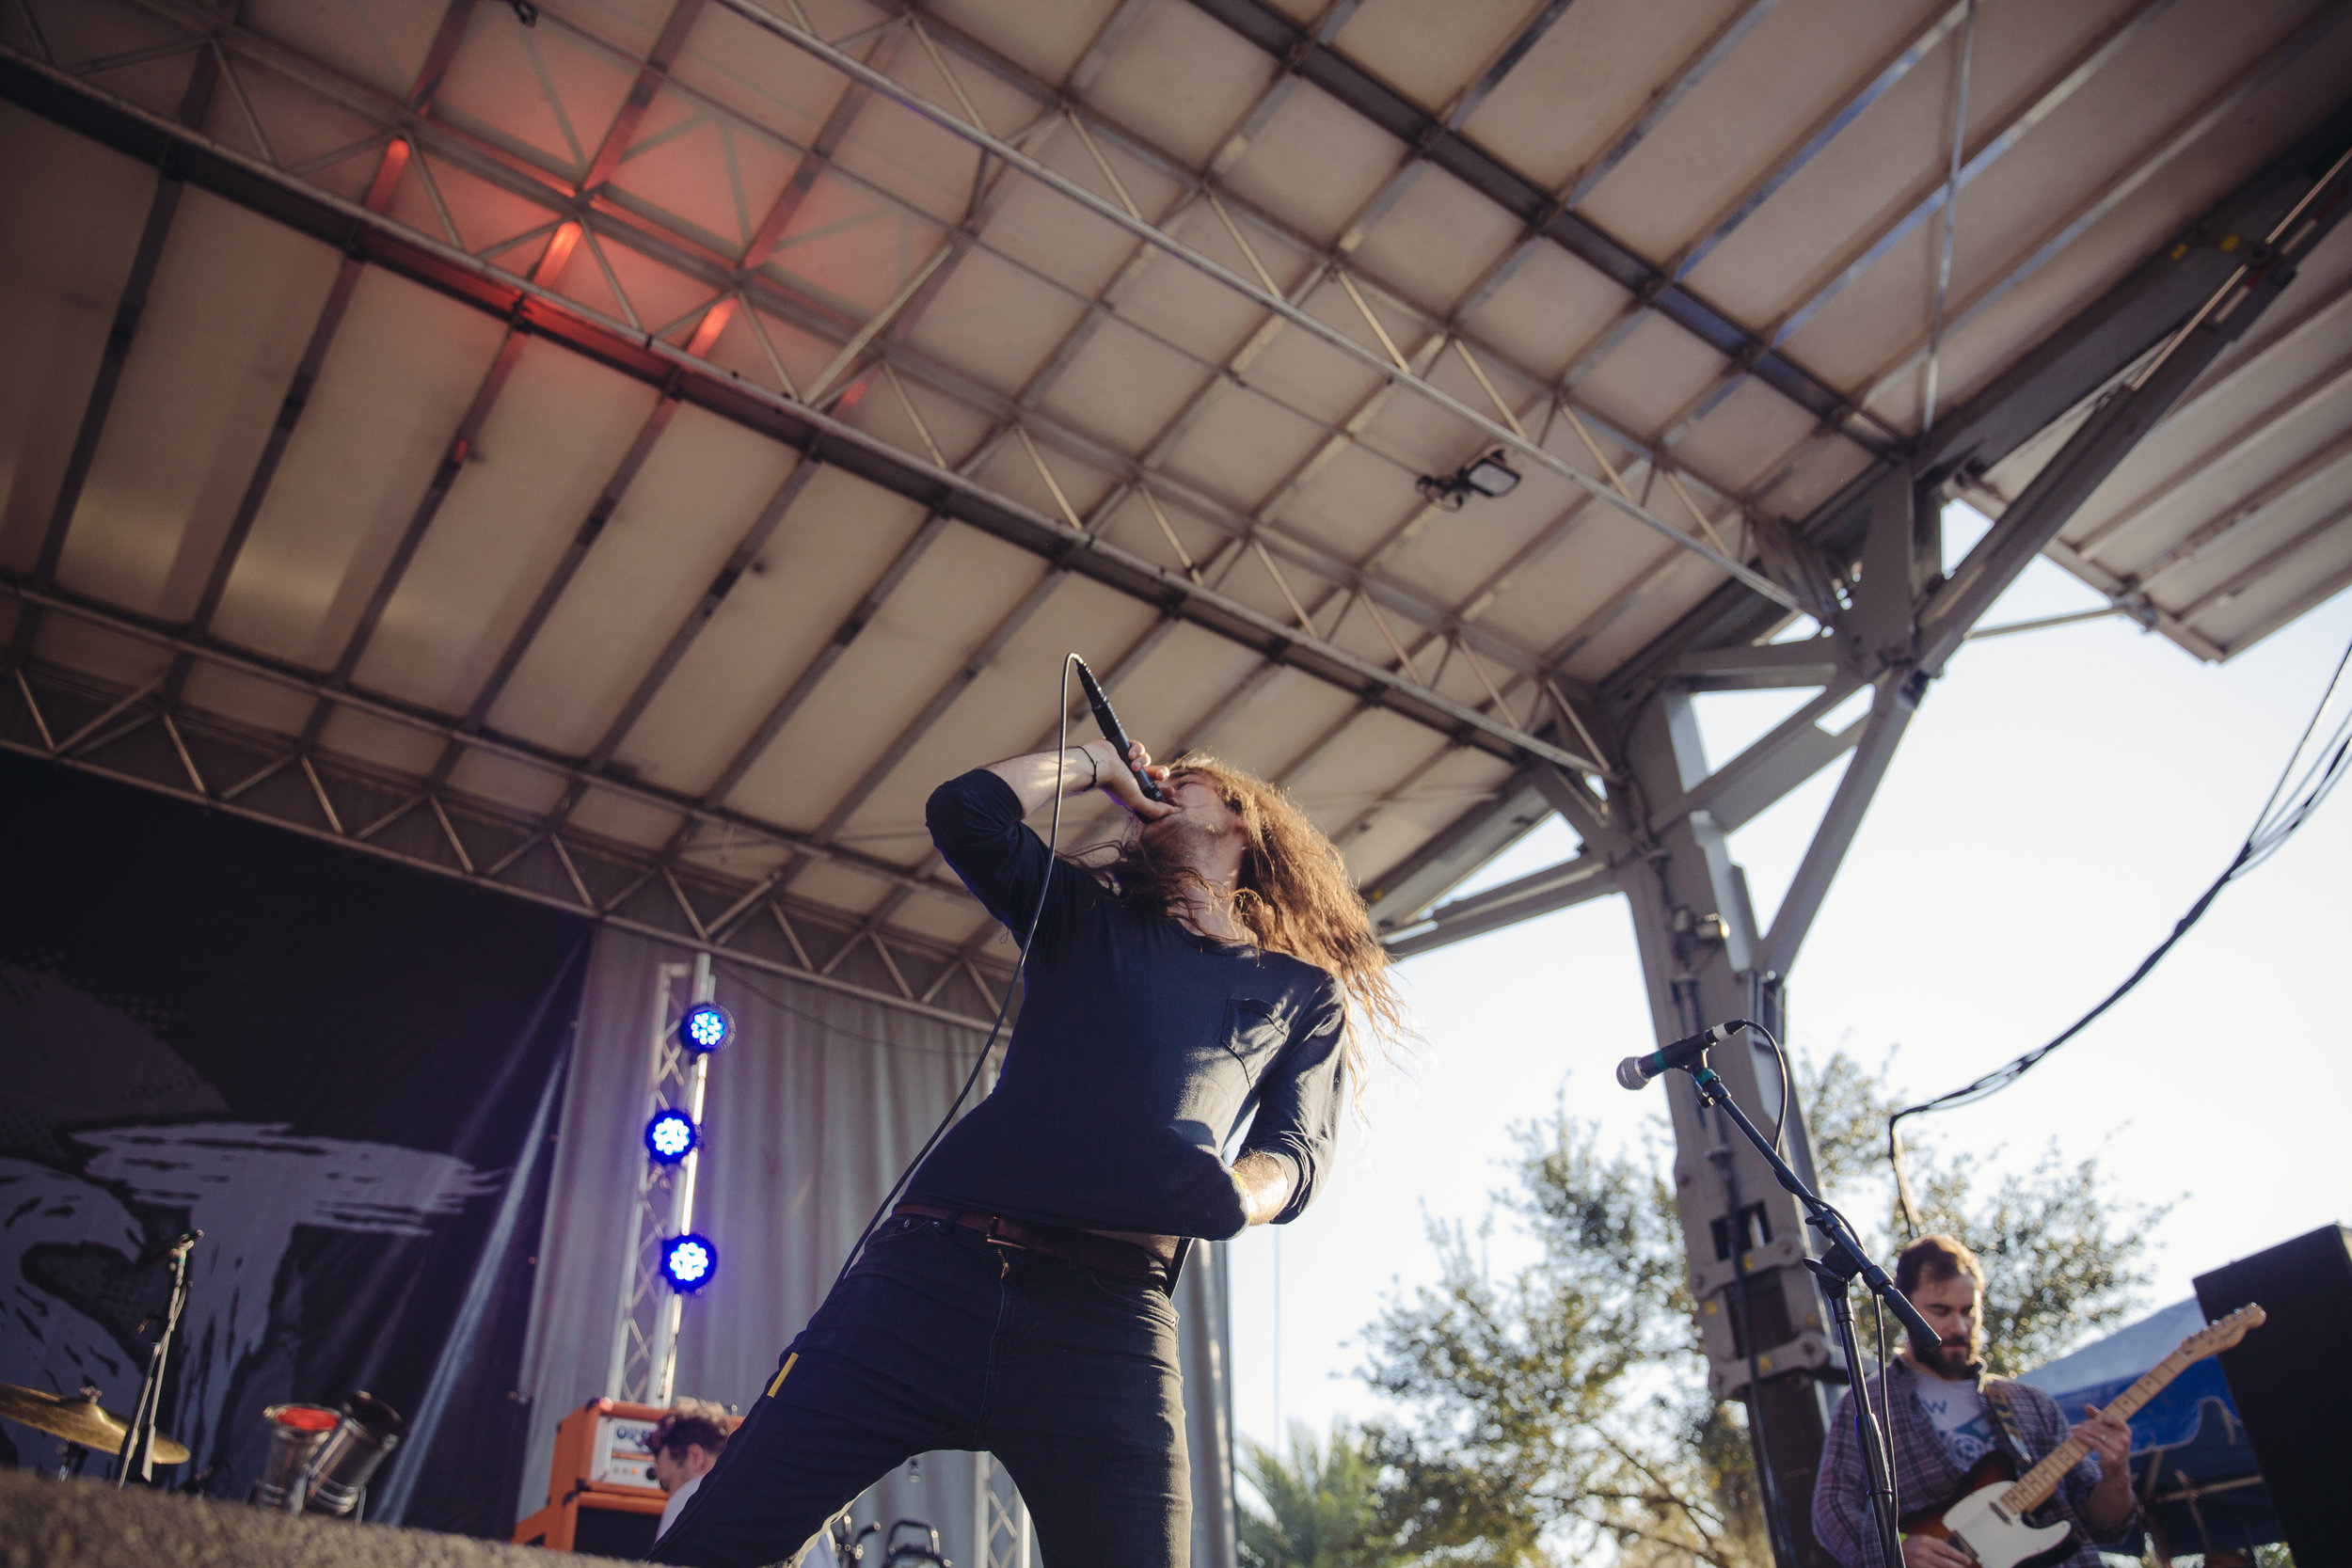 pianos-become-the-teeth---fest-14_23178540362_o.jpg